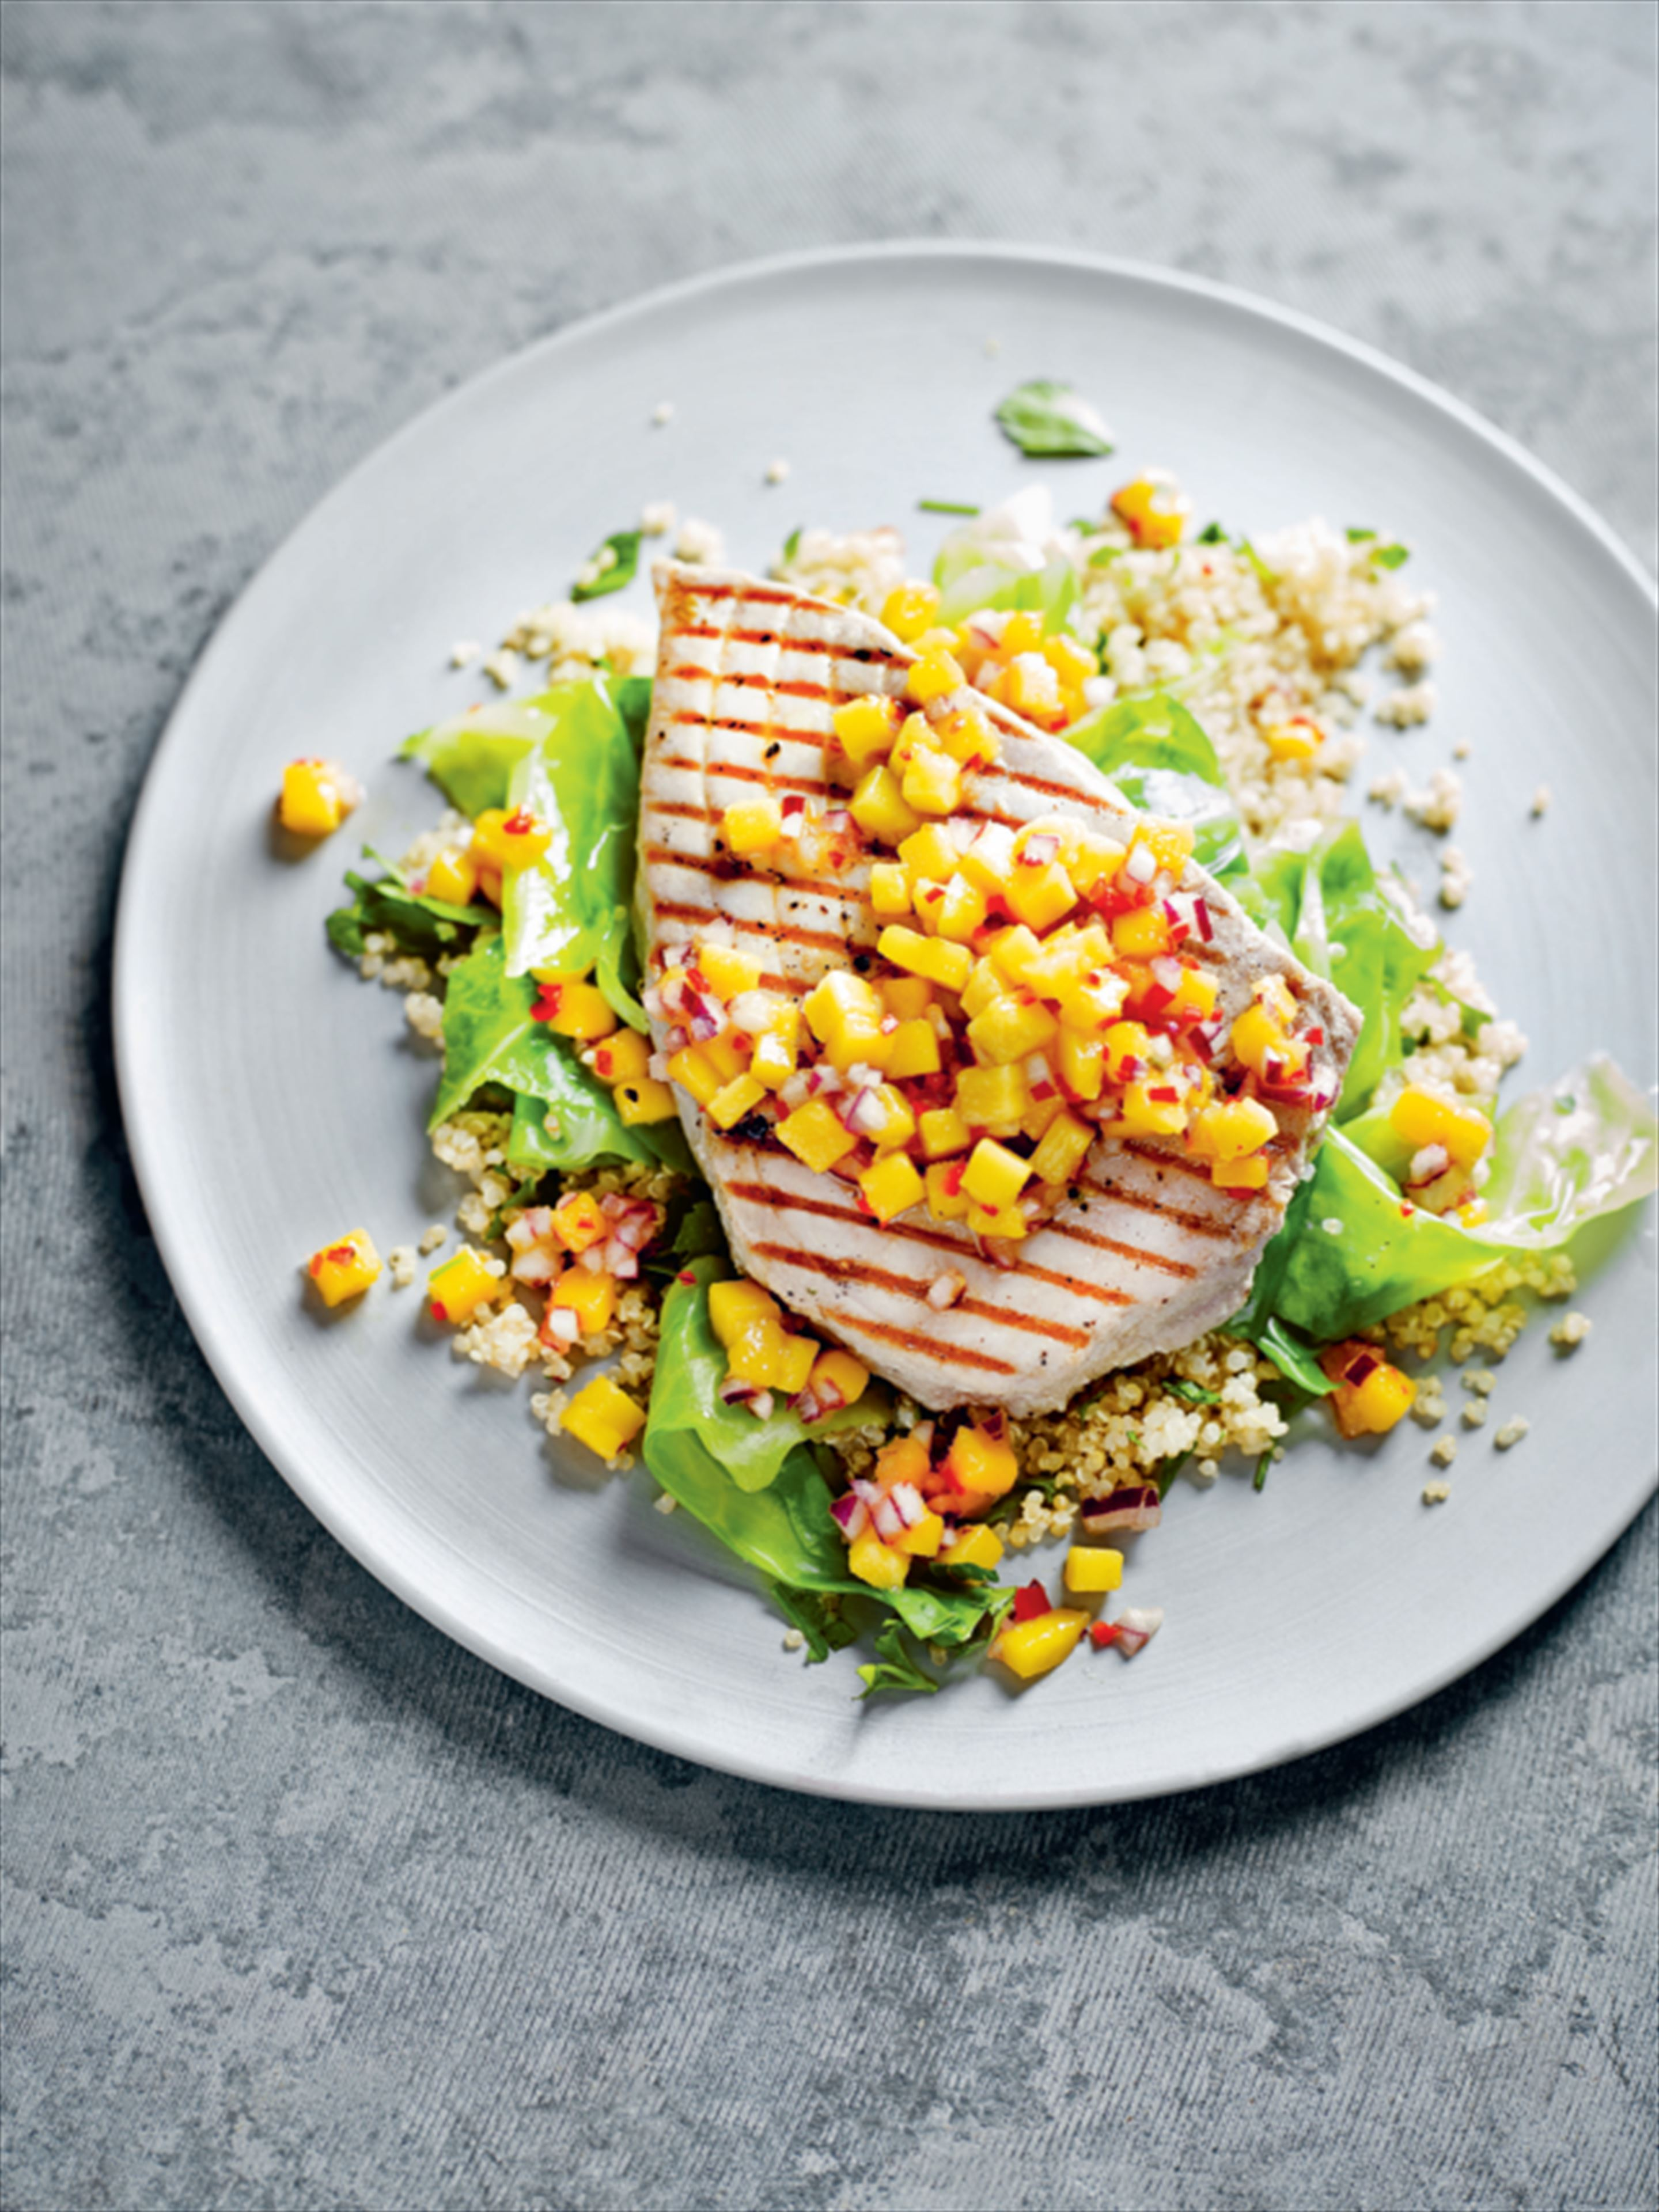 Tuna steak with mango salsa, wilted greens and quinoa verde